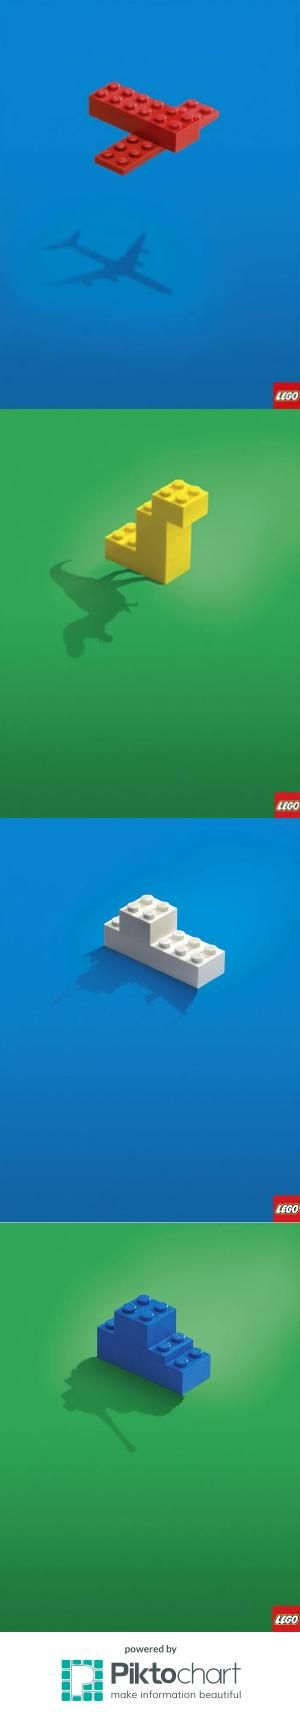 KISS principle with an ad created by Lego that strips things back and relies on one image and idea. With no copy, just a plain and easy to digest message, this ad captures the complex concept of imagination in its simplest form.